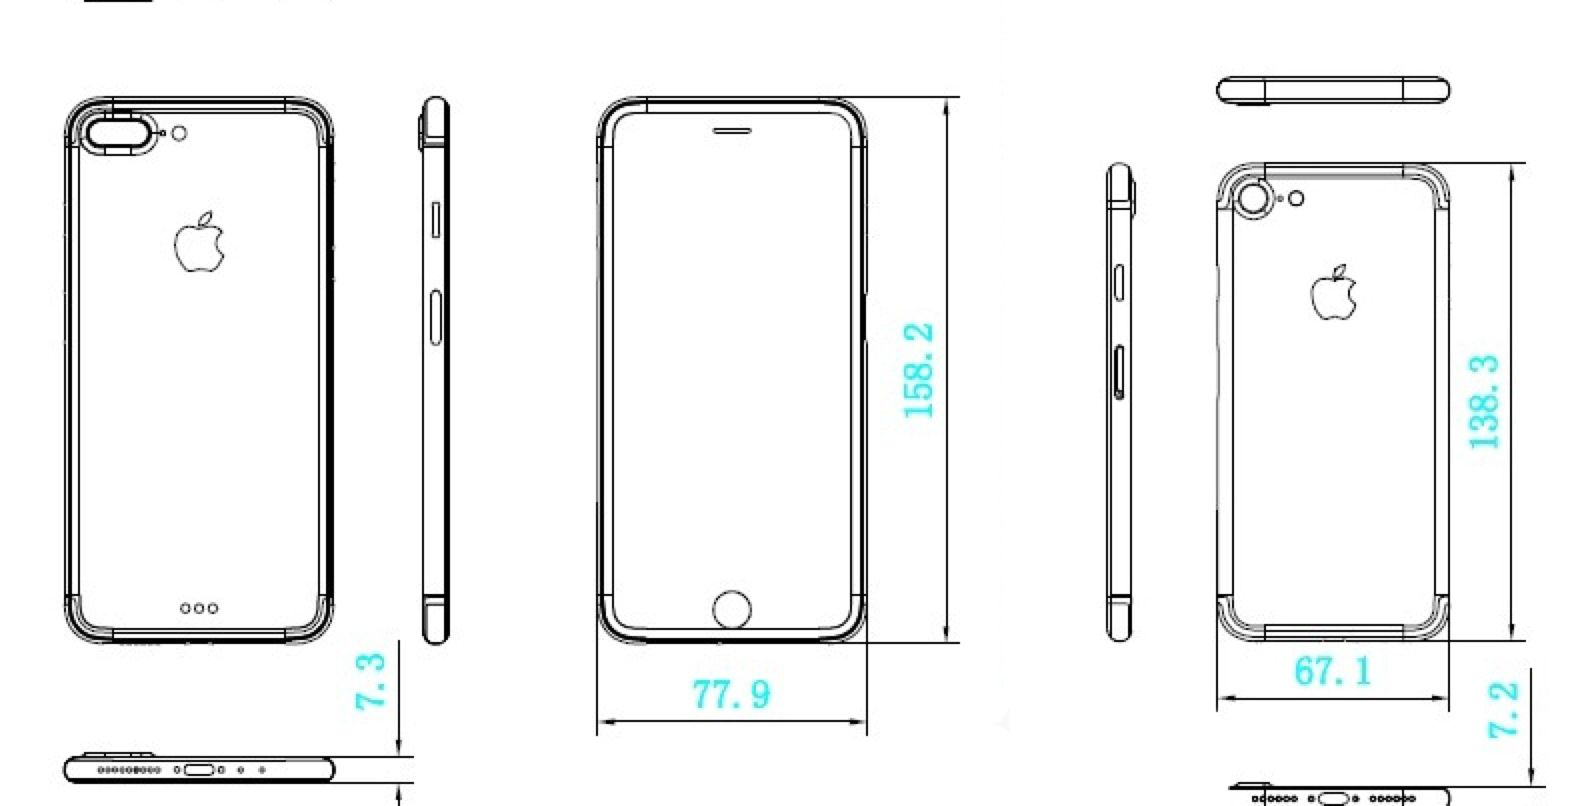 New iPhone 7 schematics suggest similar dimensions